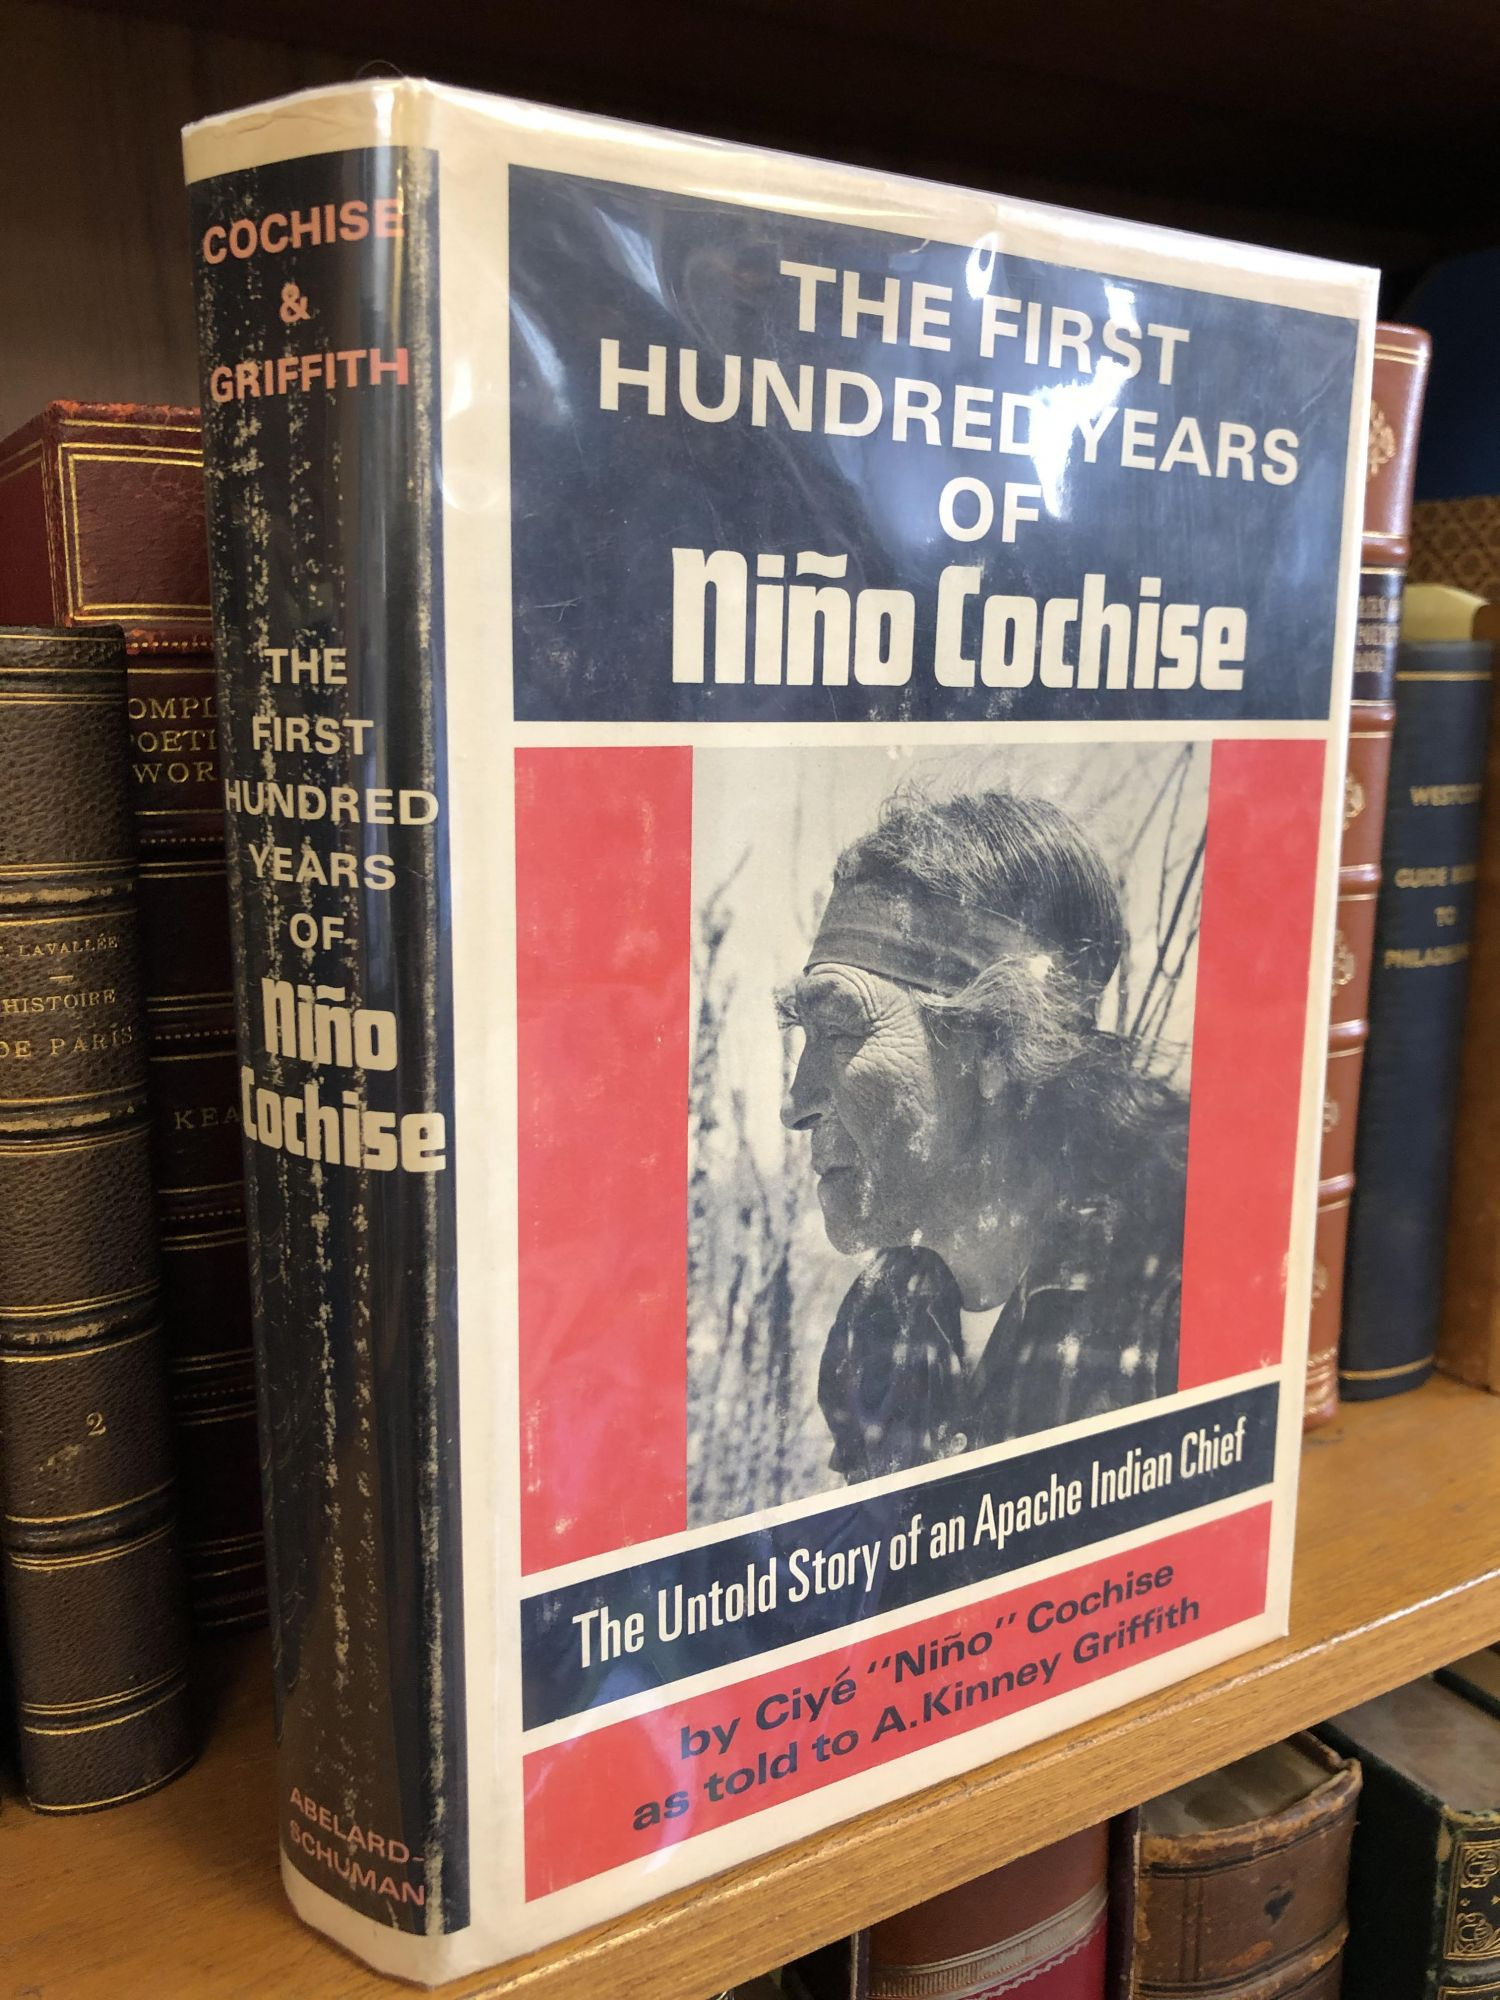 """THE FIRST HUNDRED YEARS OF NIÑO COCHISE: THE UNTOLD STORY OF AN APACHE INDIAN CHIEF. Ciye """"Nino"""" Cochise, A. Kinney Griffith."""